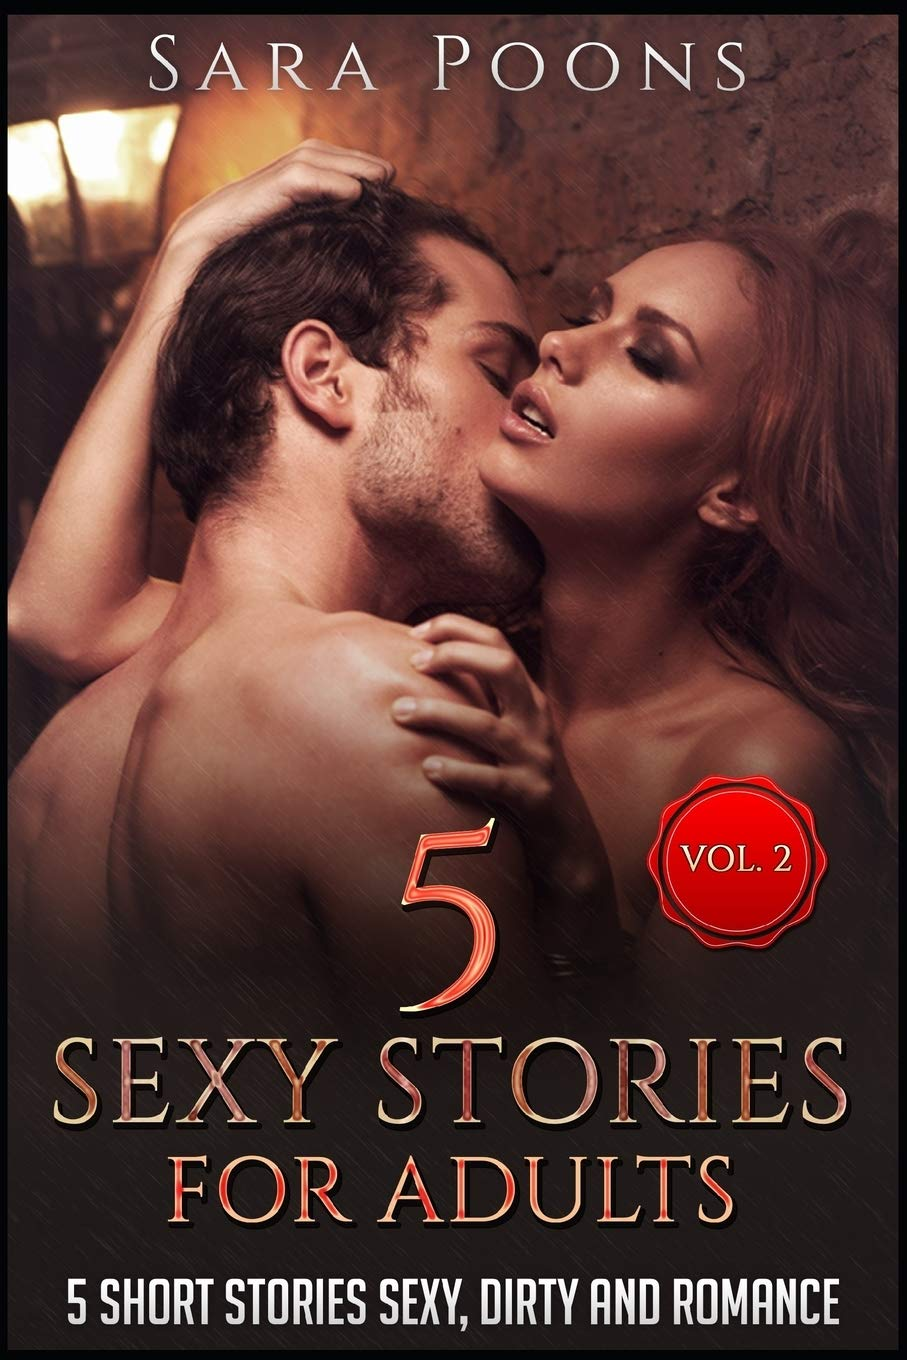 Sexy Stories Adults Vol 2 Romance product image